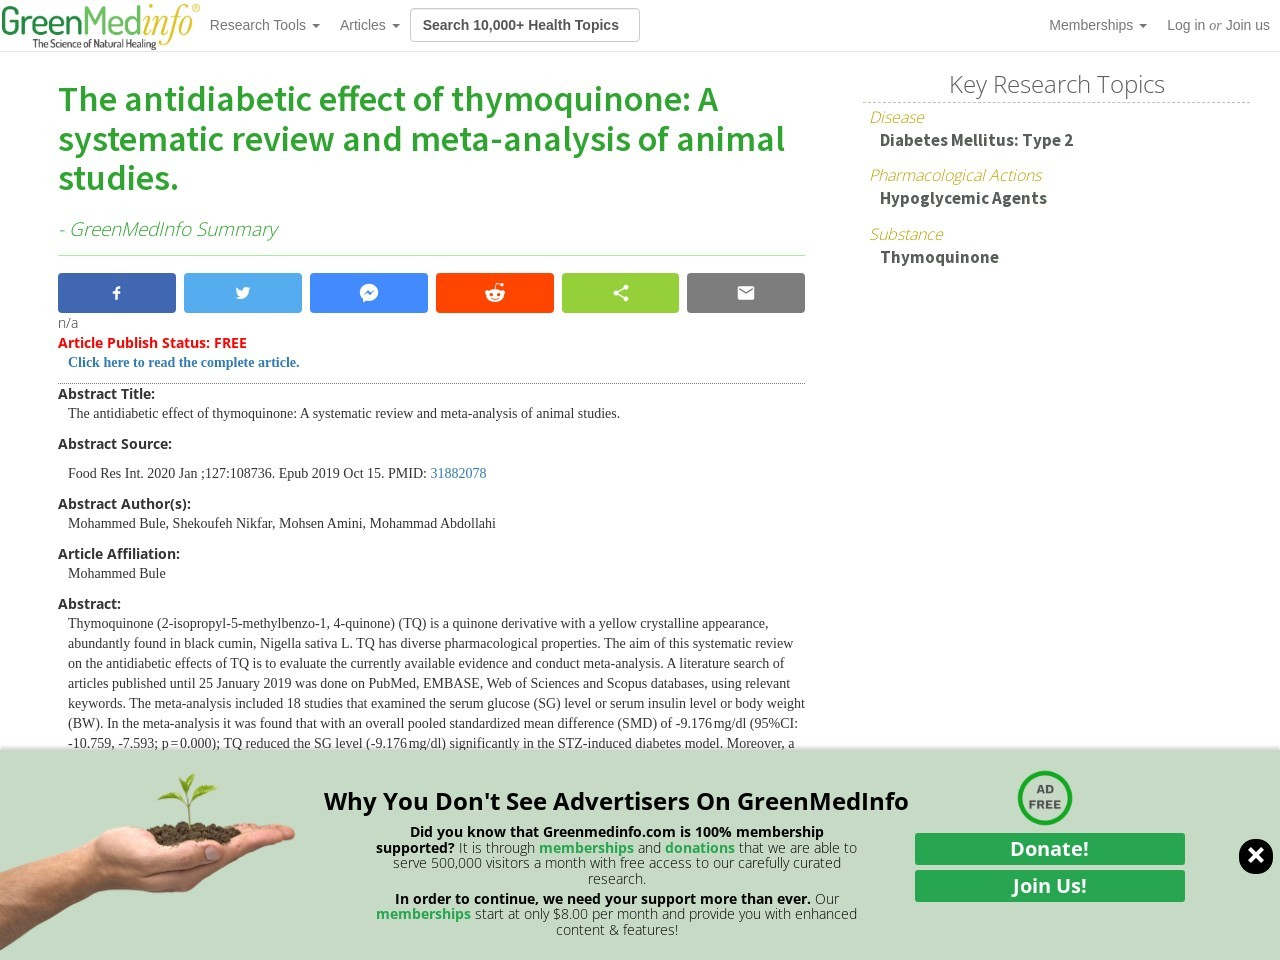 The antidiabetic effect of thymoquinone: A systematic review and meta-analysis of animal studies.